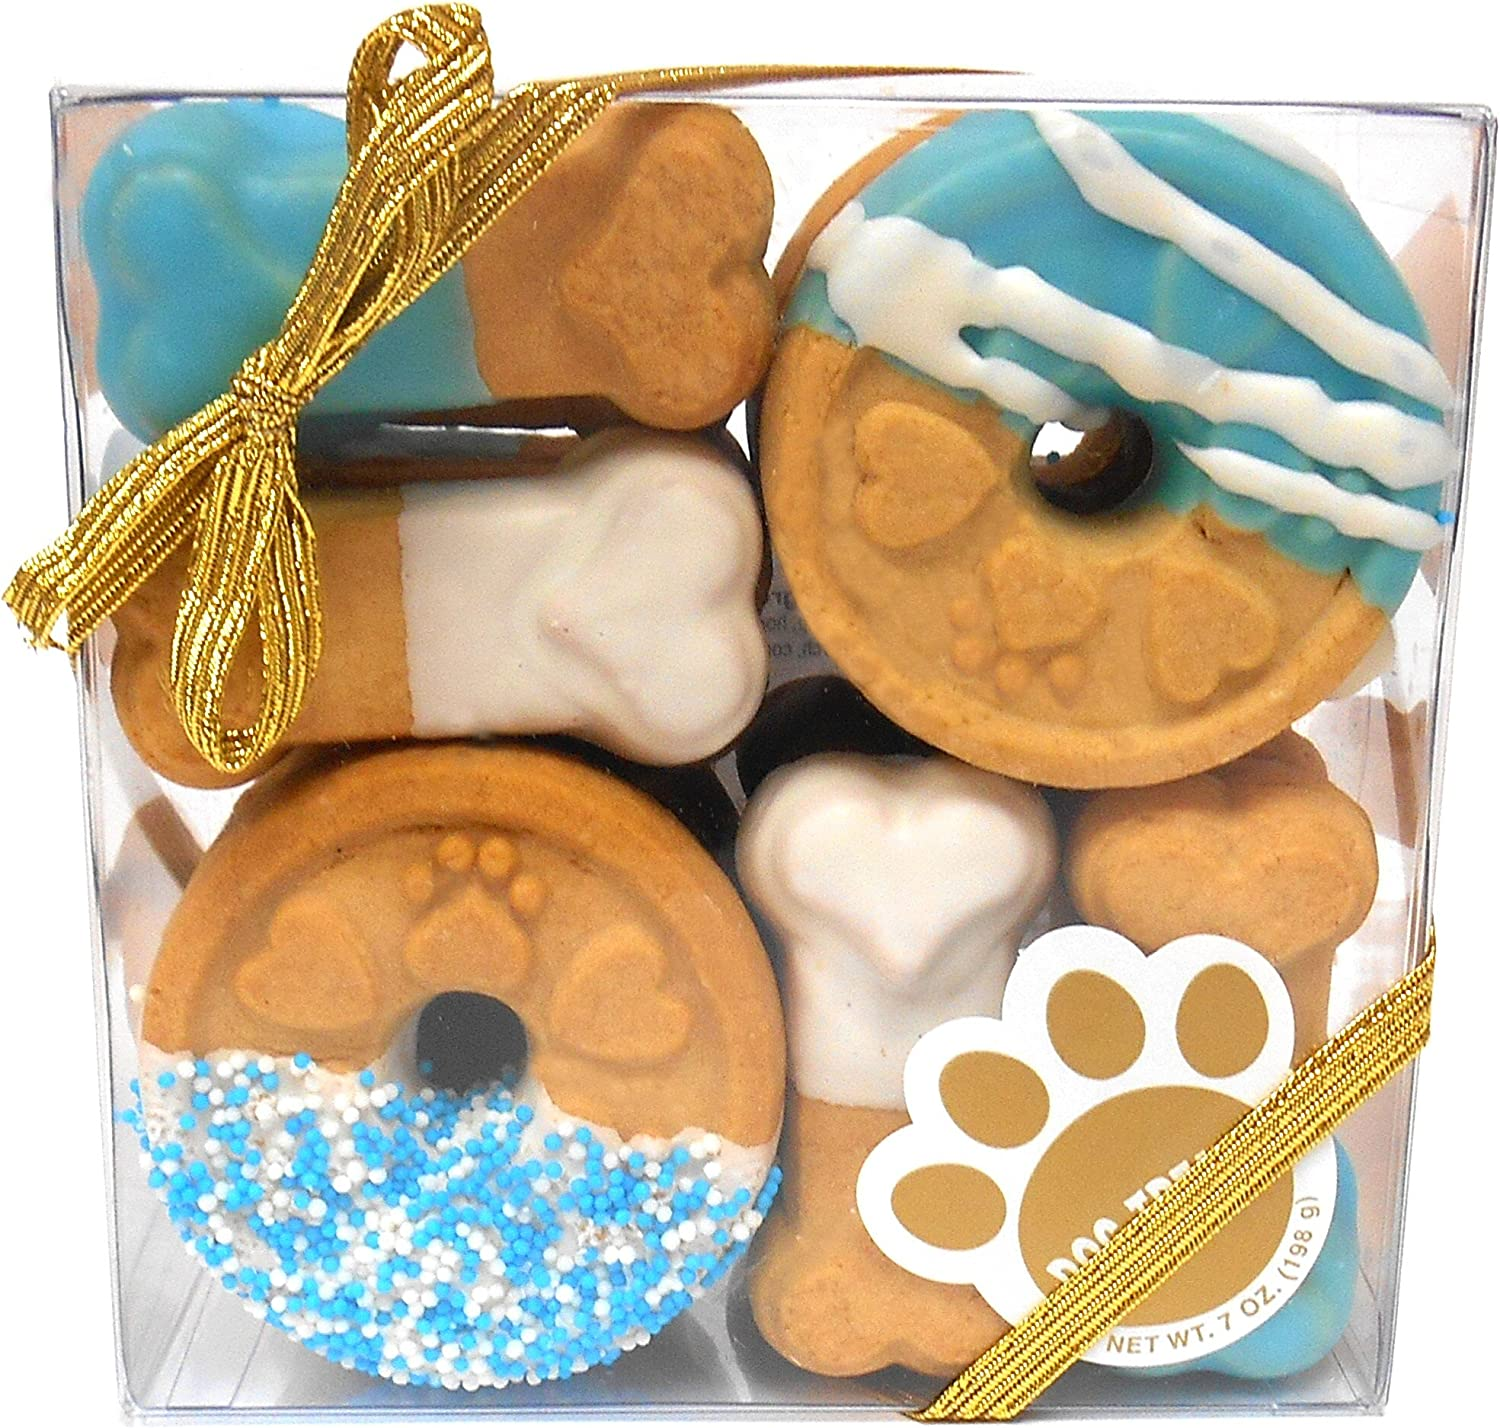 Claudia's Canine Cuisine Signature Gift Box of Dog Cookies, 7Ounce, bluee Buddies